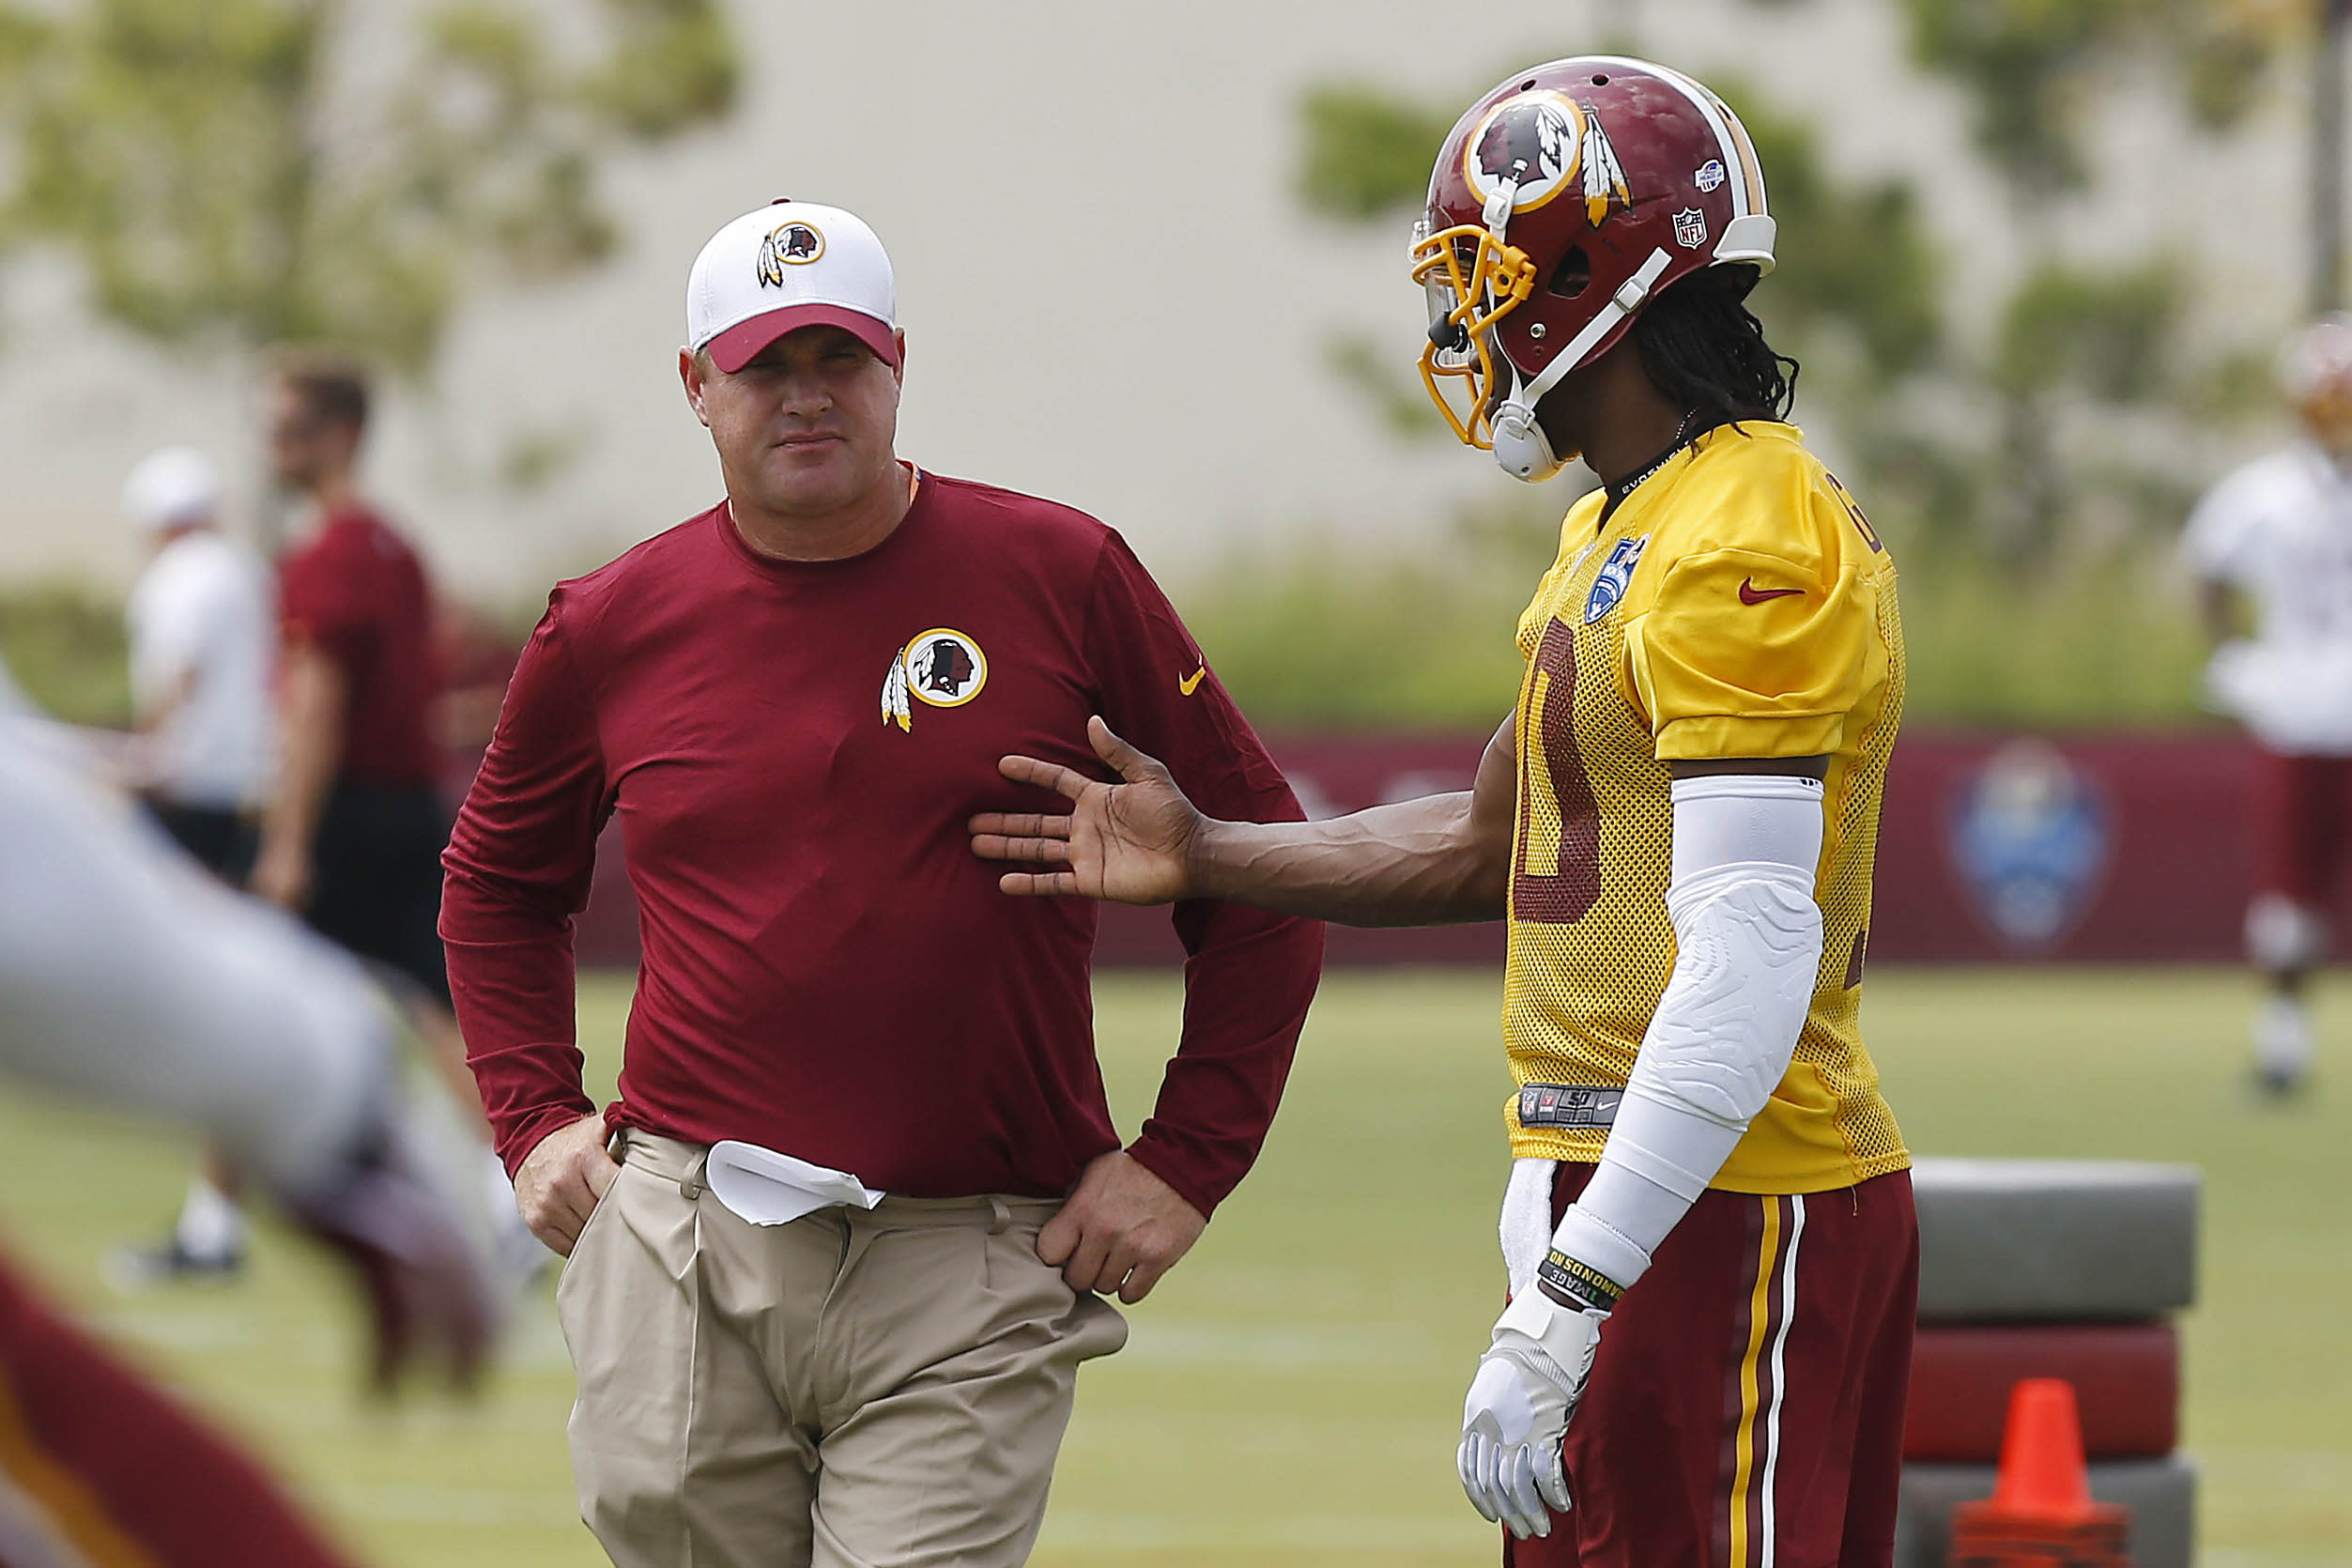 OPEN THREAD: Seems important for RG3, Redskins, but it's still preseason